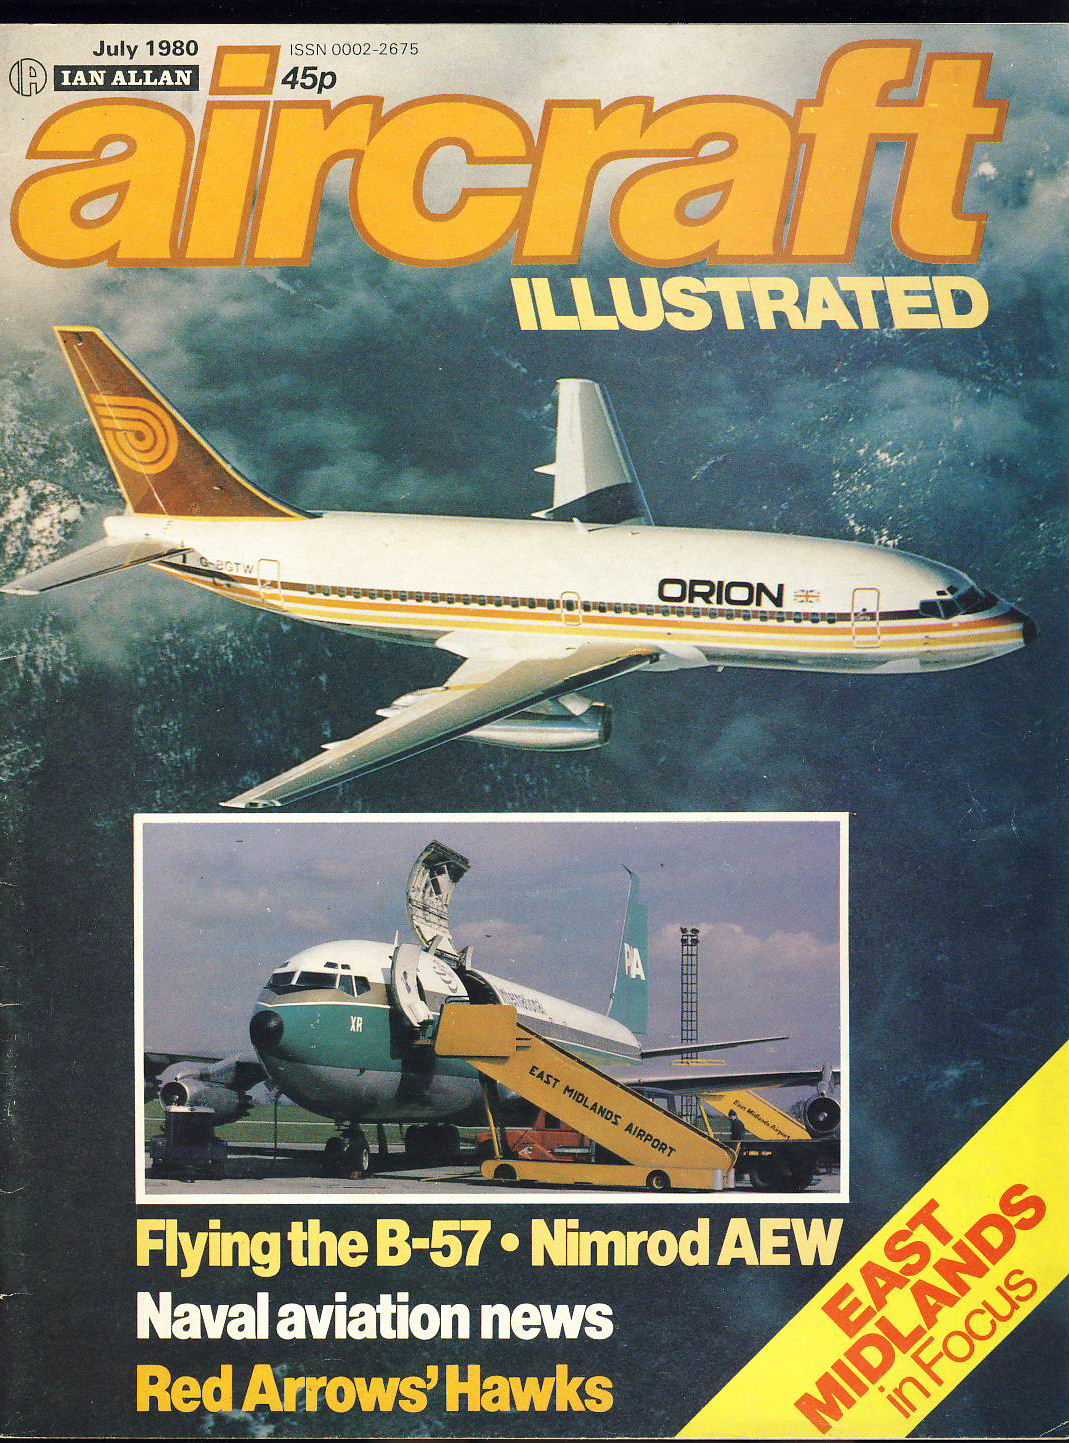 1980 Aircraft Illustrated magazine B57 Nimrod AEW Red Arrows Hawks ref362 Ian Allen publication vol.13 no.7 Pre-owned in good condition for age. Please see large photo for more details.